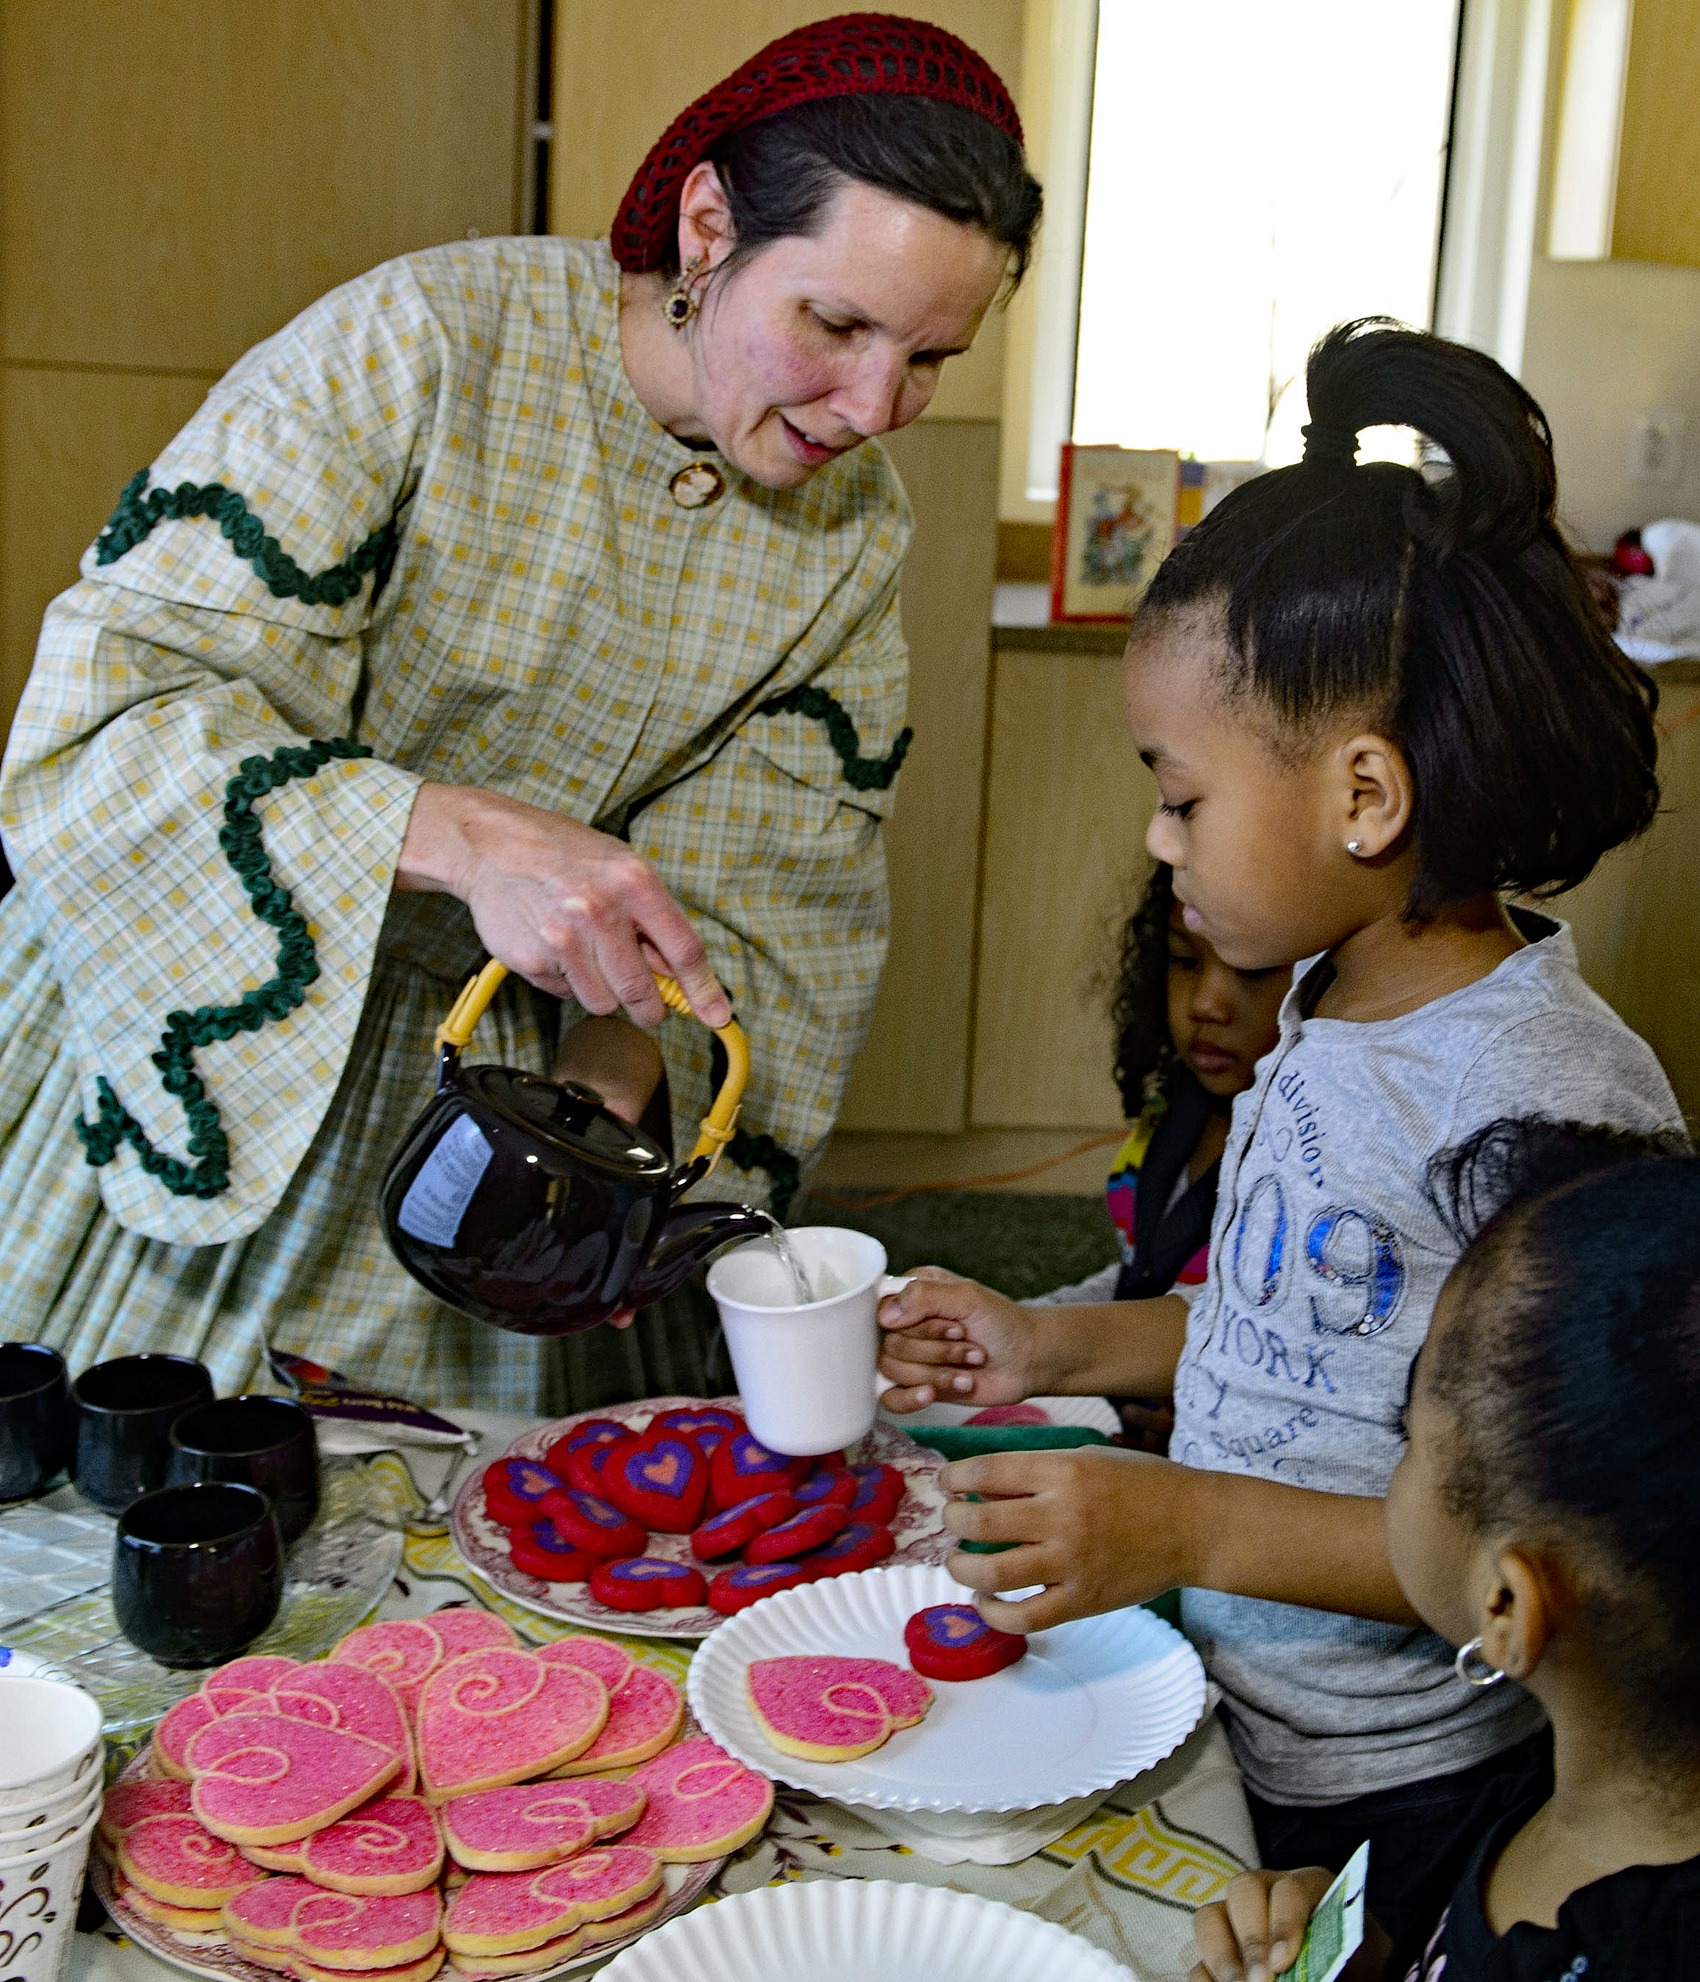 Docent in costume pours tea for a young child